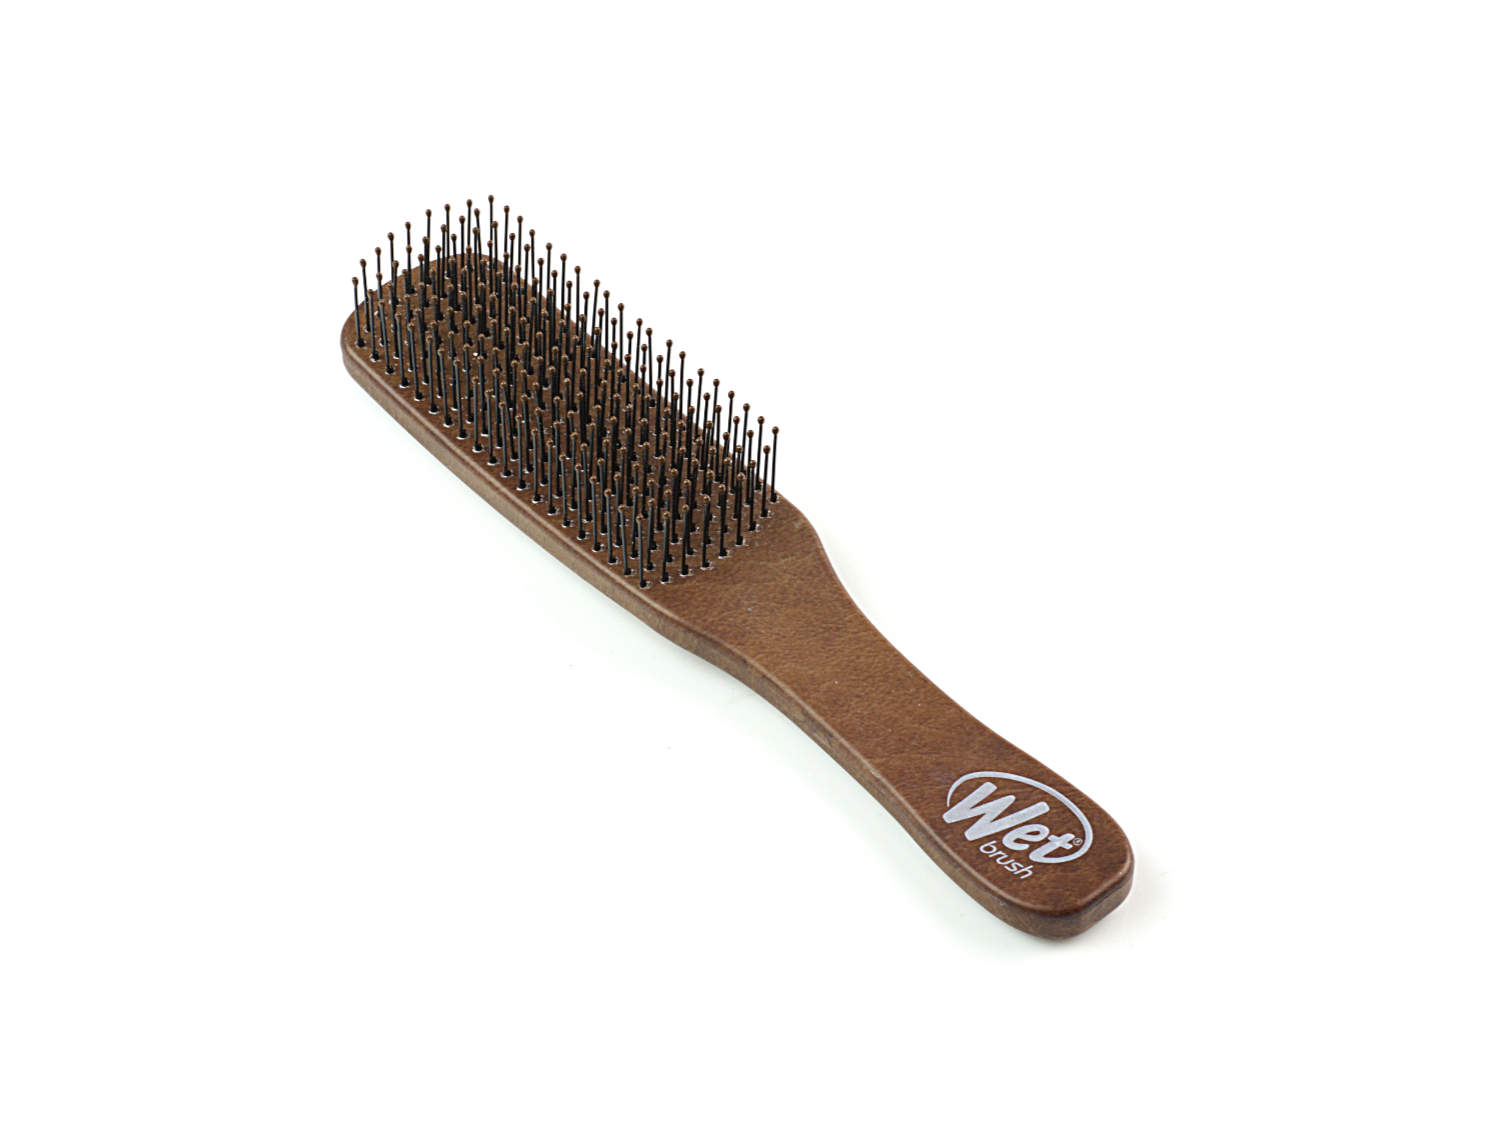 Arma Beauty - Wet Brush - B838WBROWN